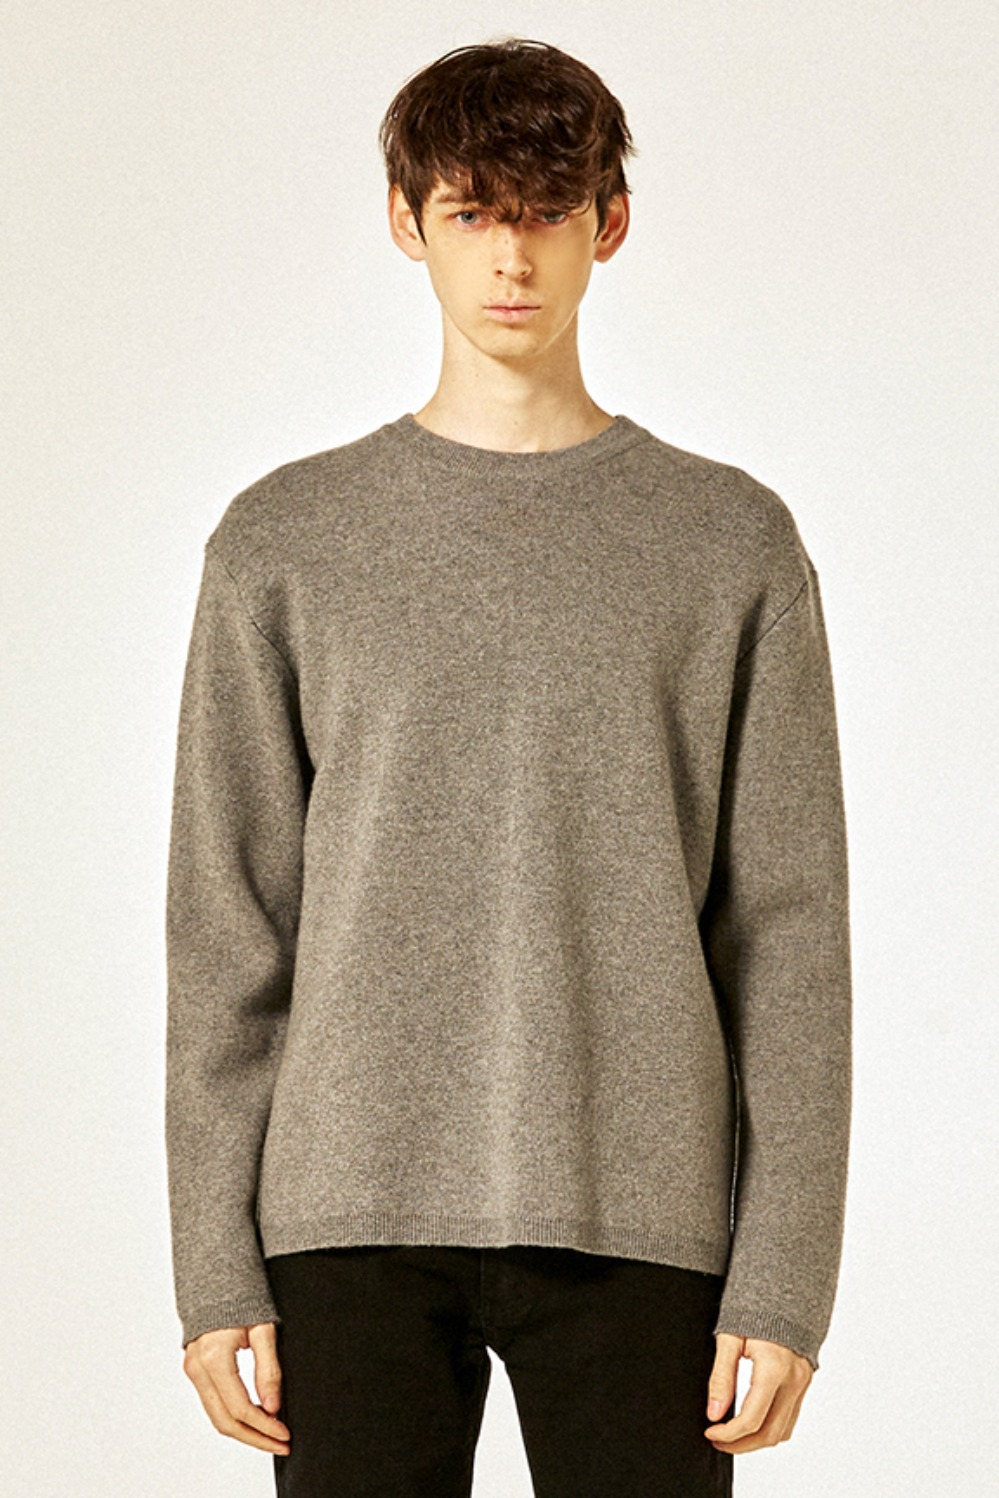 21 S/S Cashmere Knit (Dark Grey)